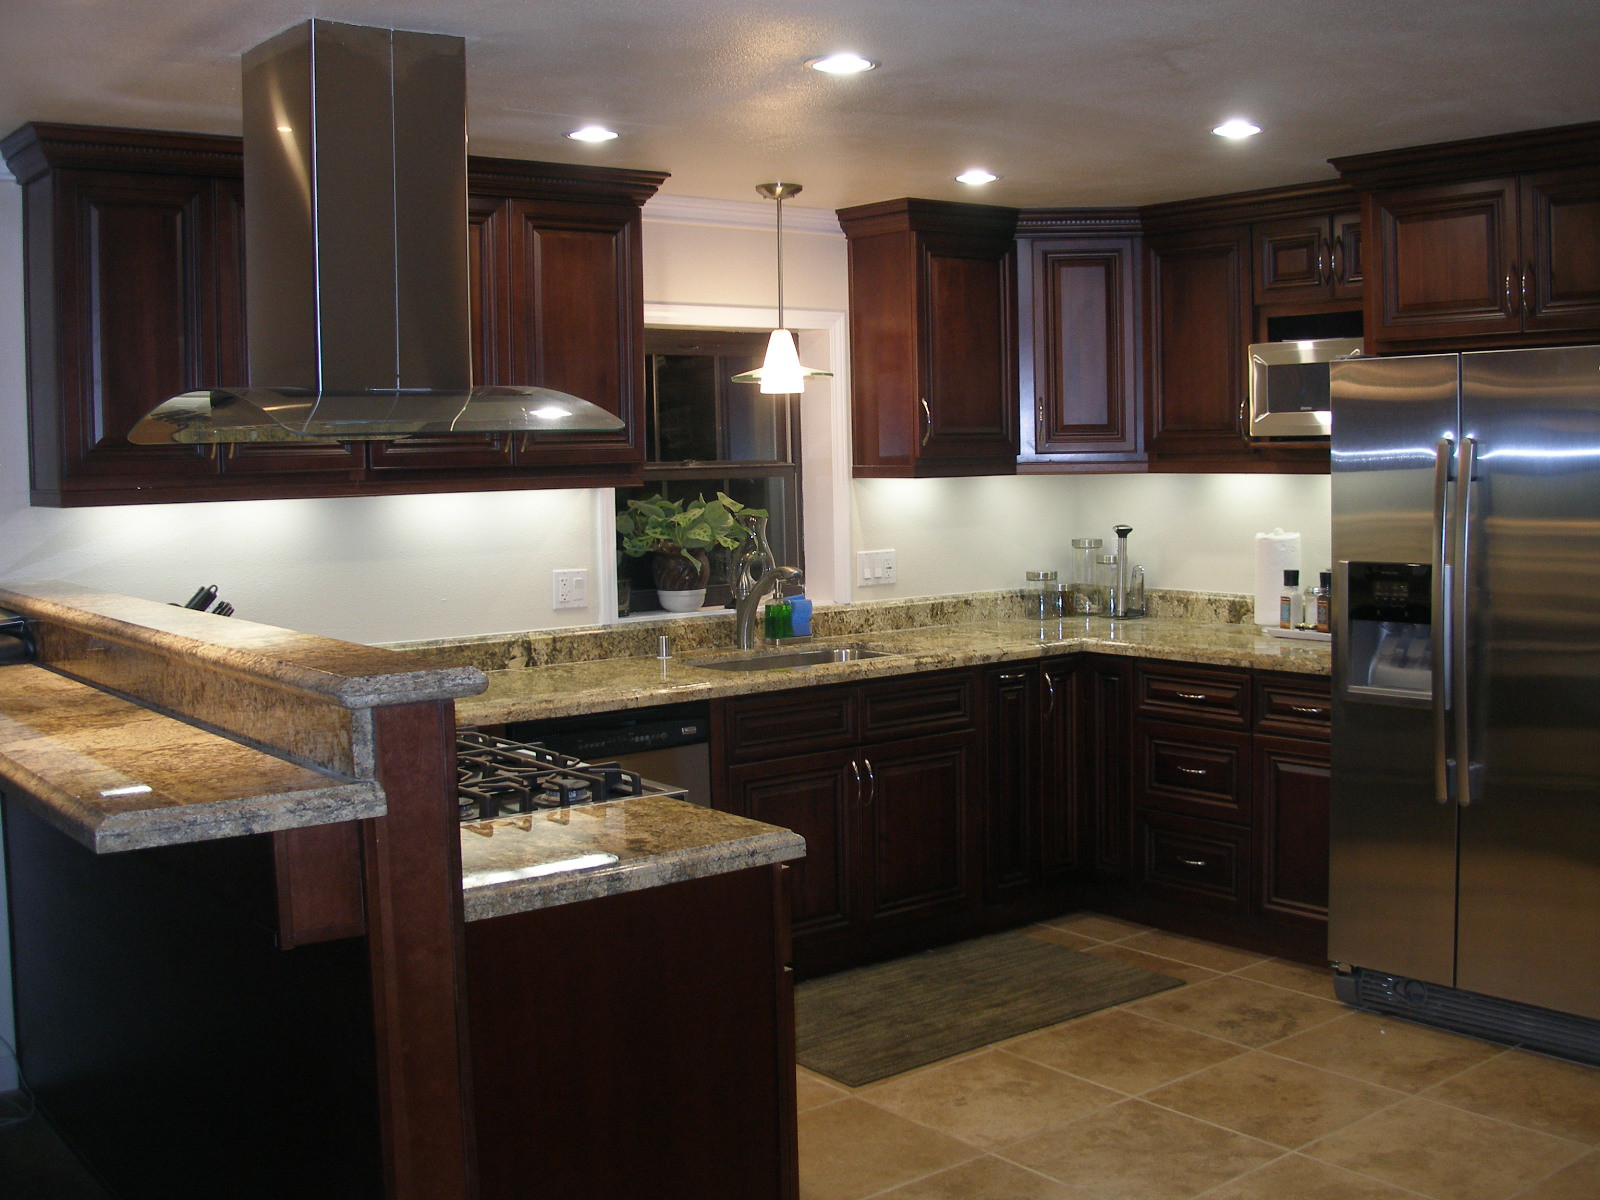 kitchen remodel remodel kitchen CALL FOR YOUR FREE KITCHEN REMODEL ESTIMATE TODAY or